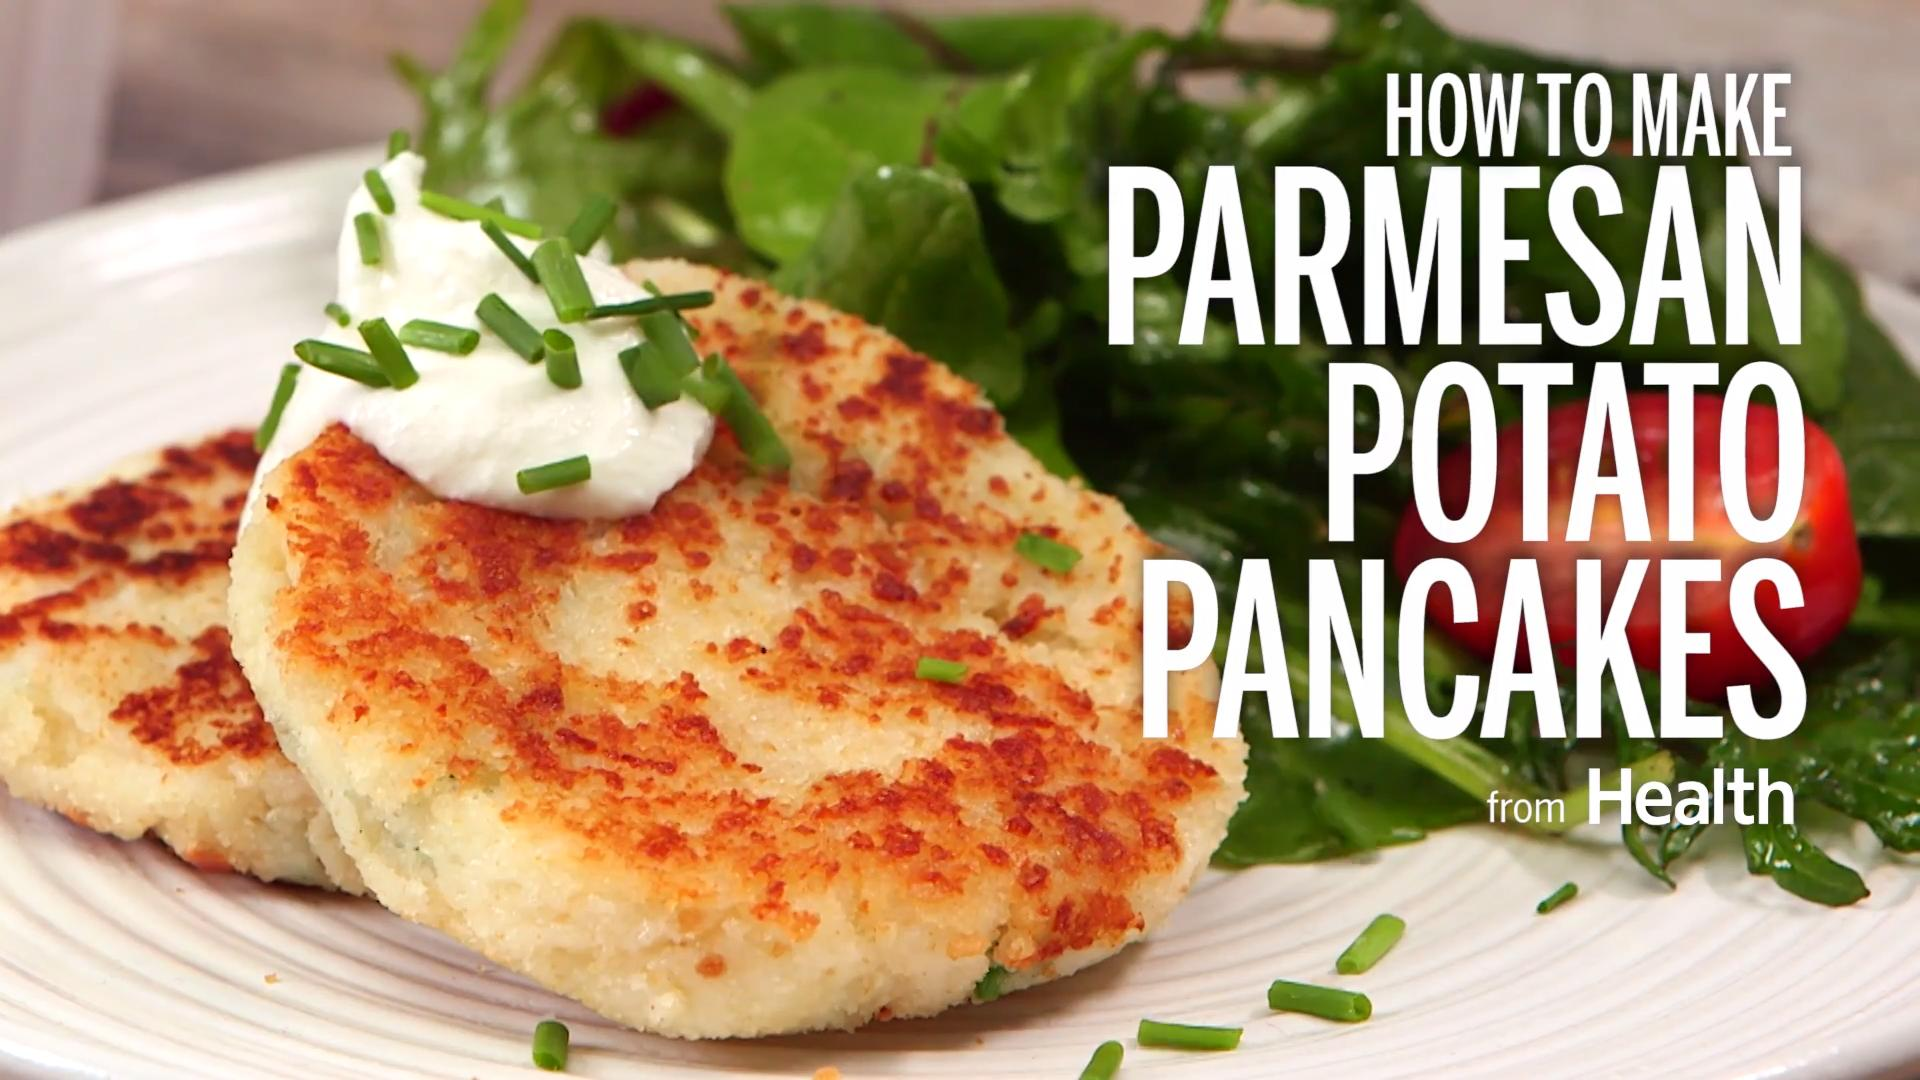 Parmesan potato pancakes recipe health ccuart Image collections